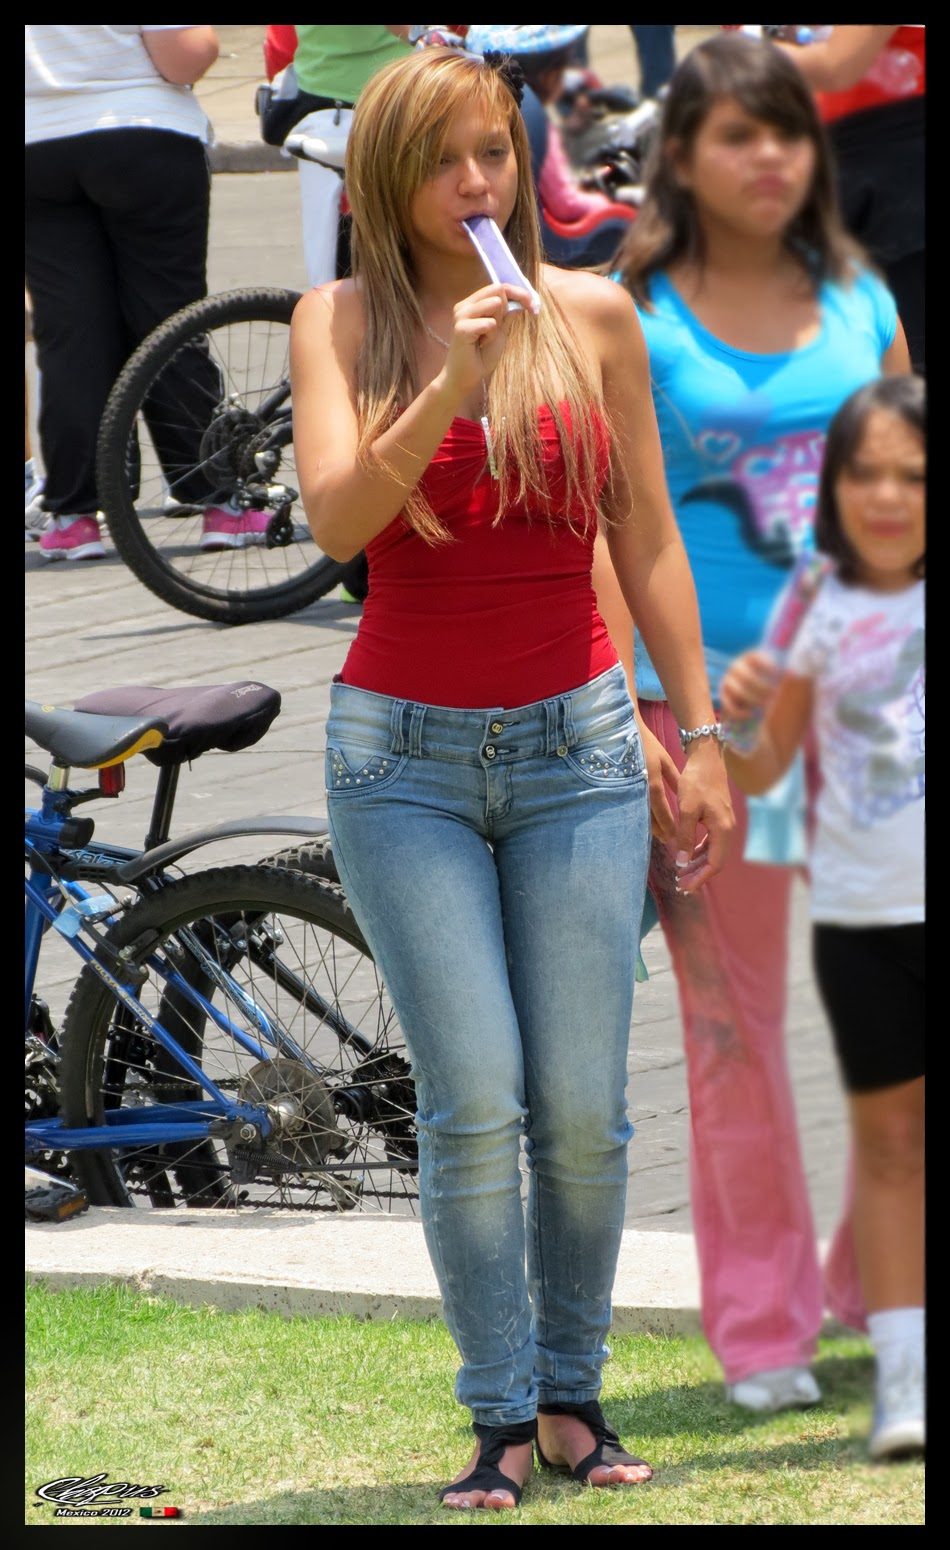 Sexy girls on the street, girls in jeans, spandex and leggings, tight